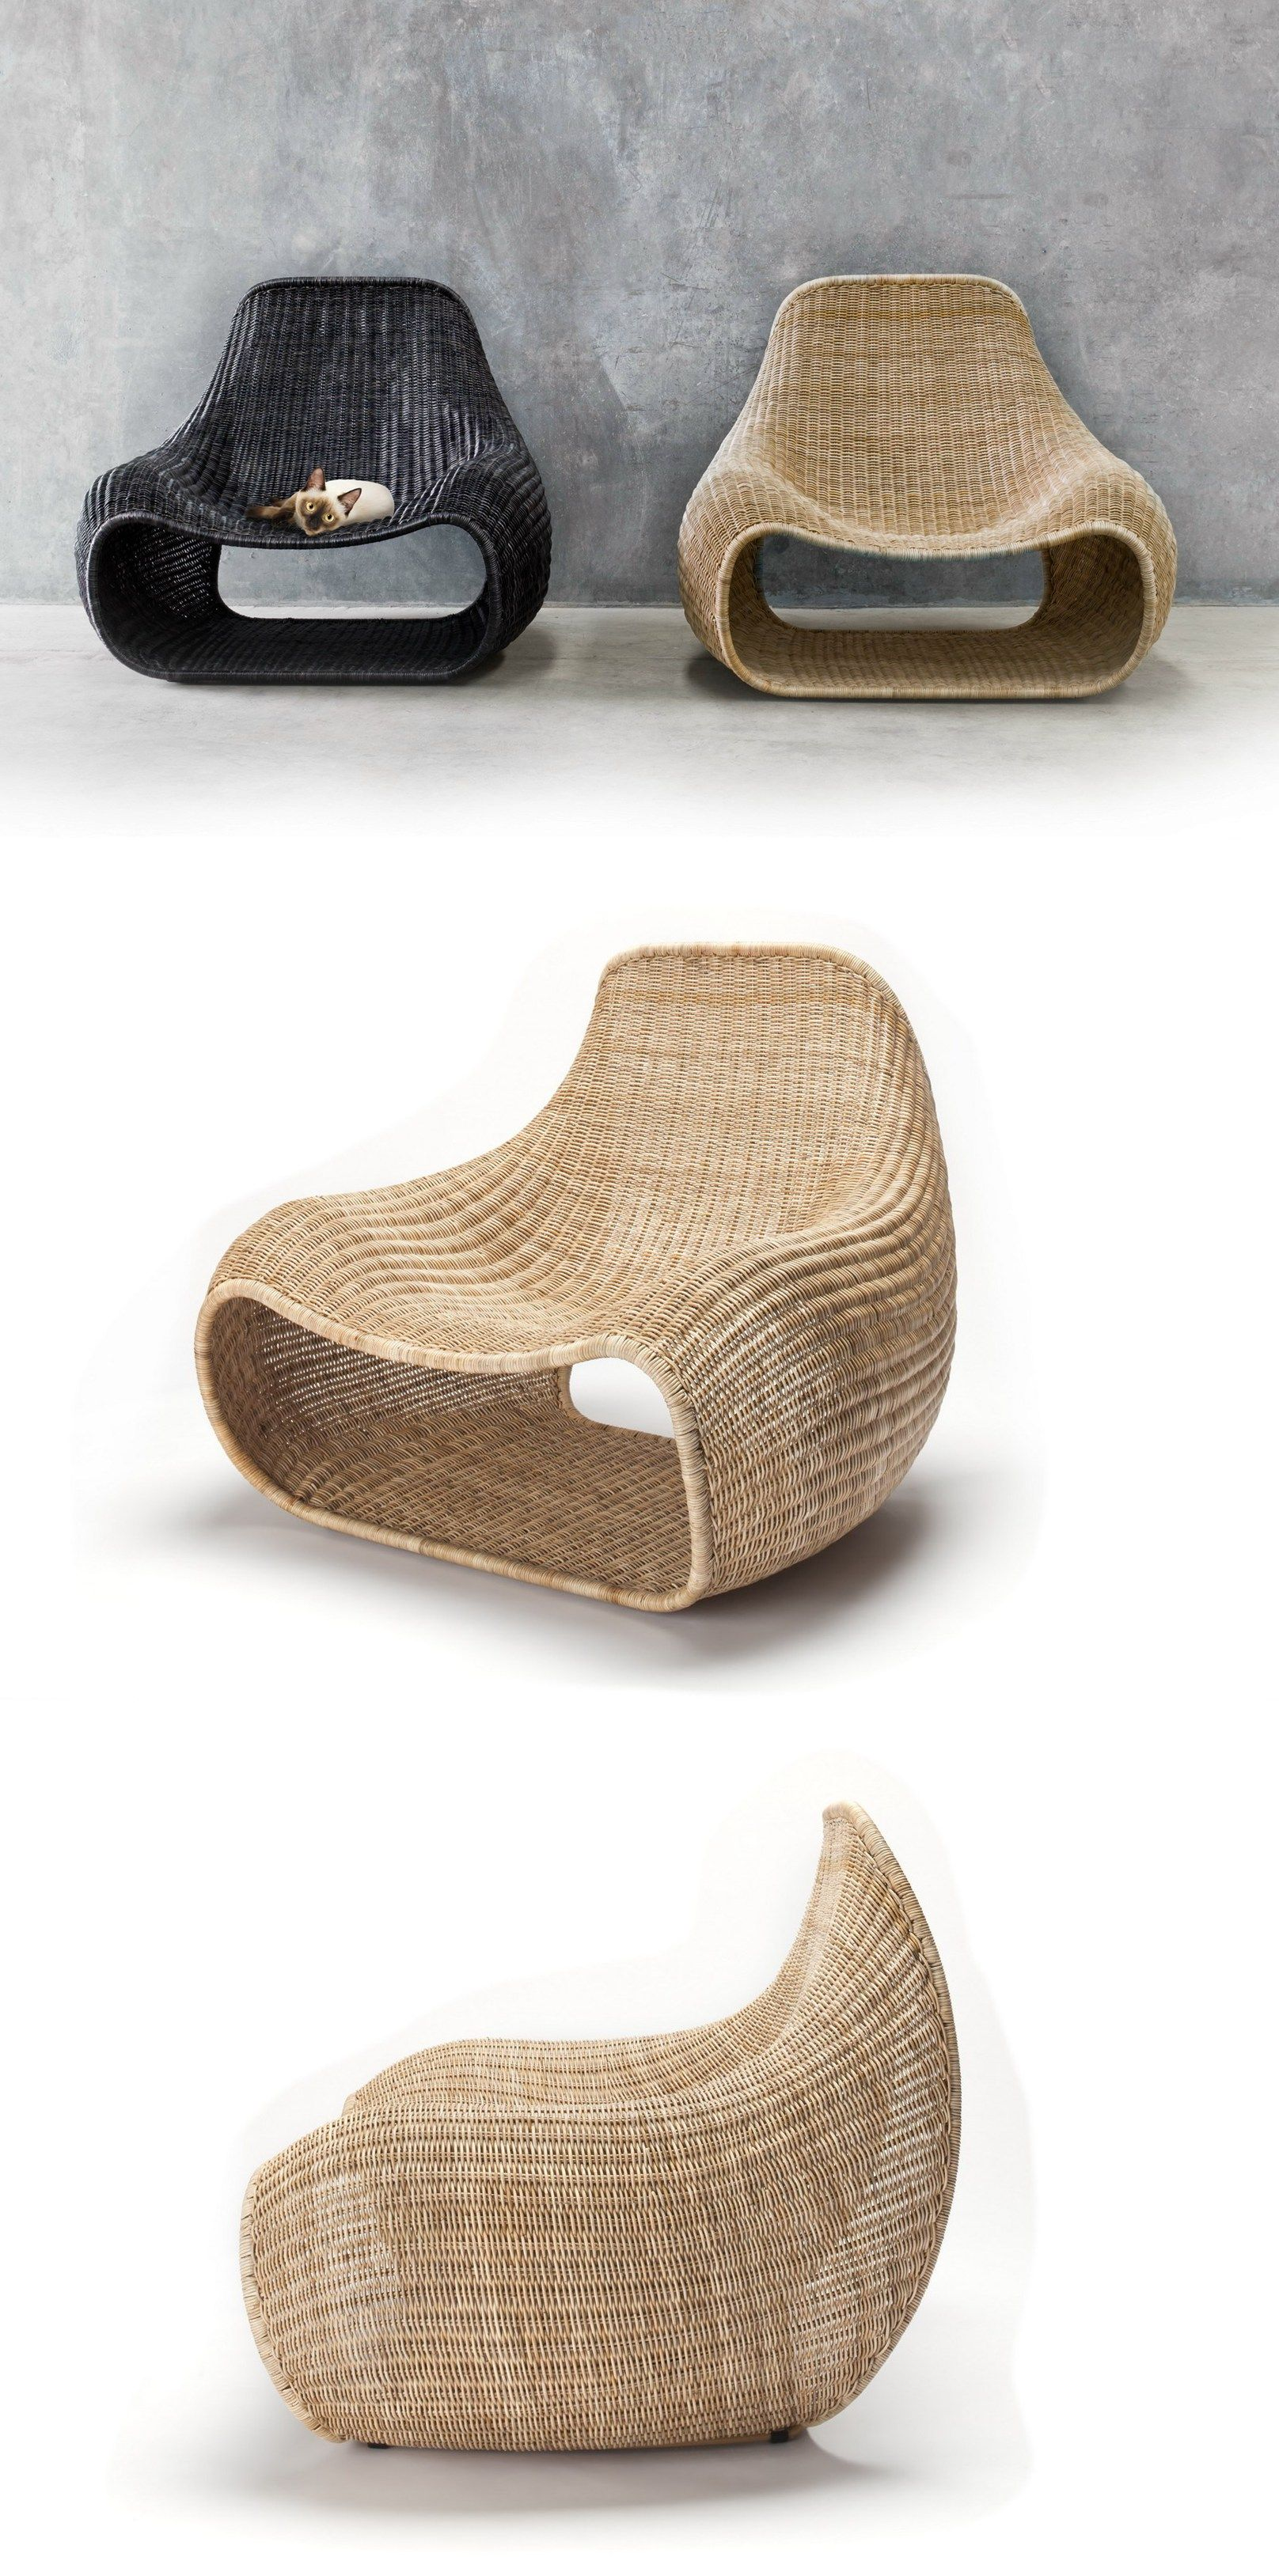 Feelgood Design when rattan and wood are warm cosy and inviting